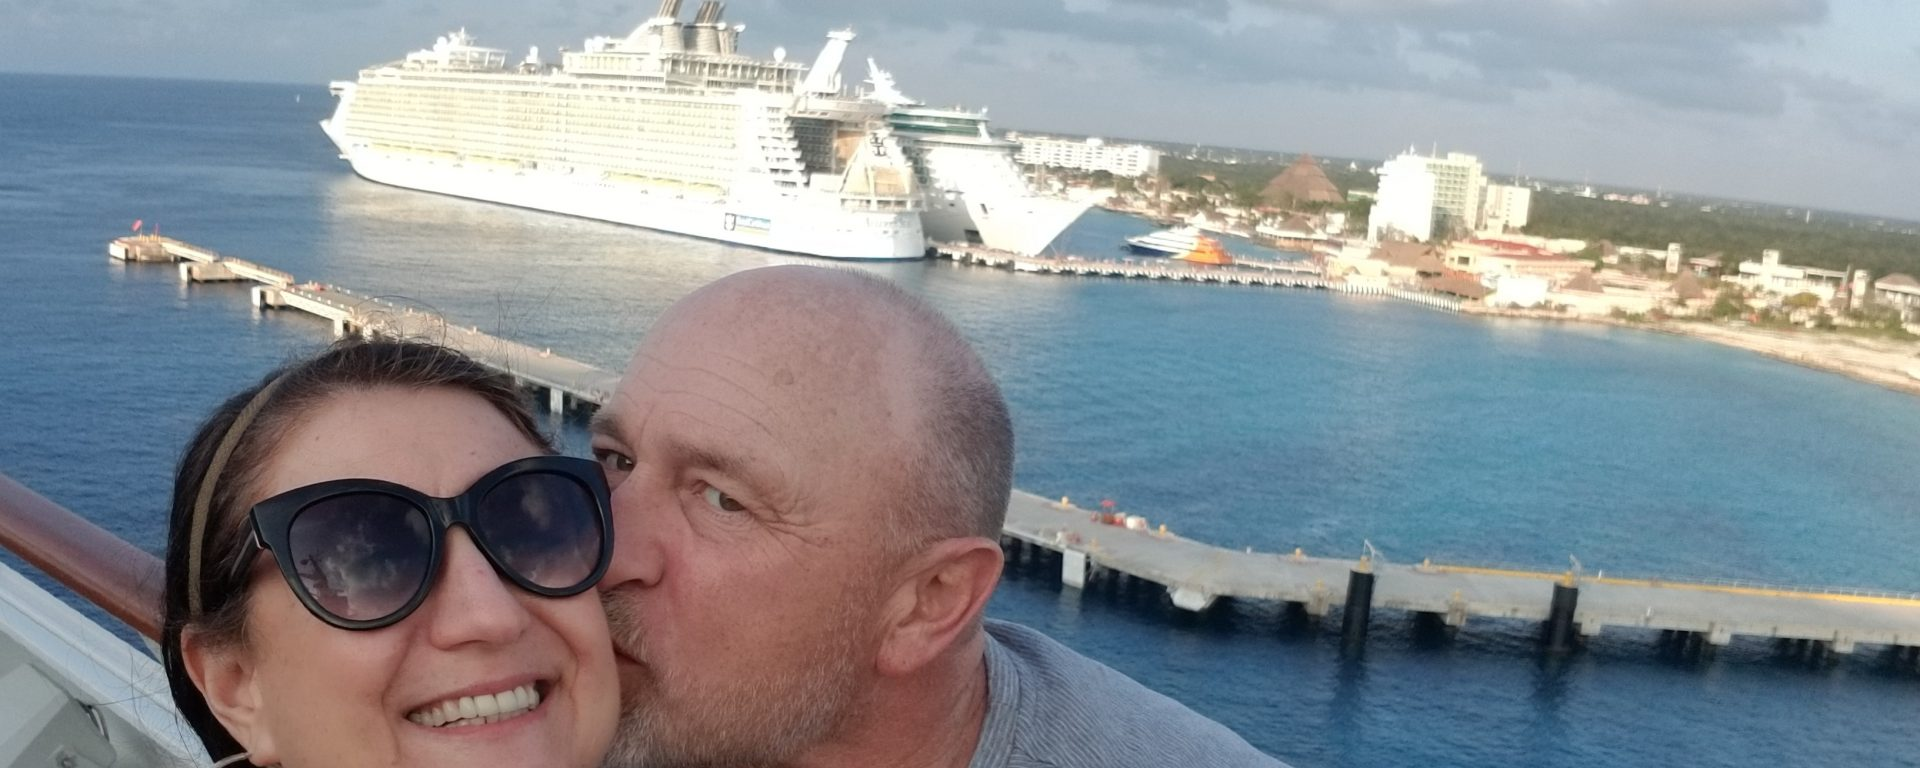 man kissing woman with cruise ship behind